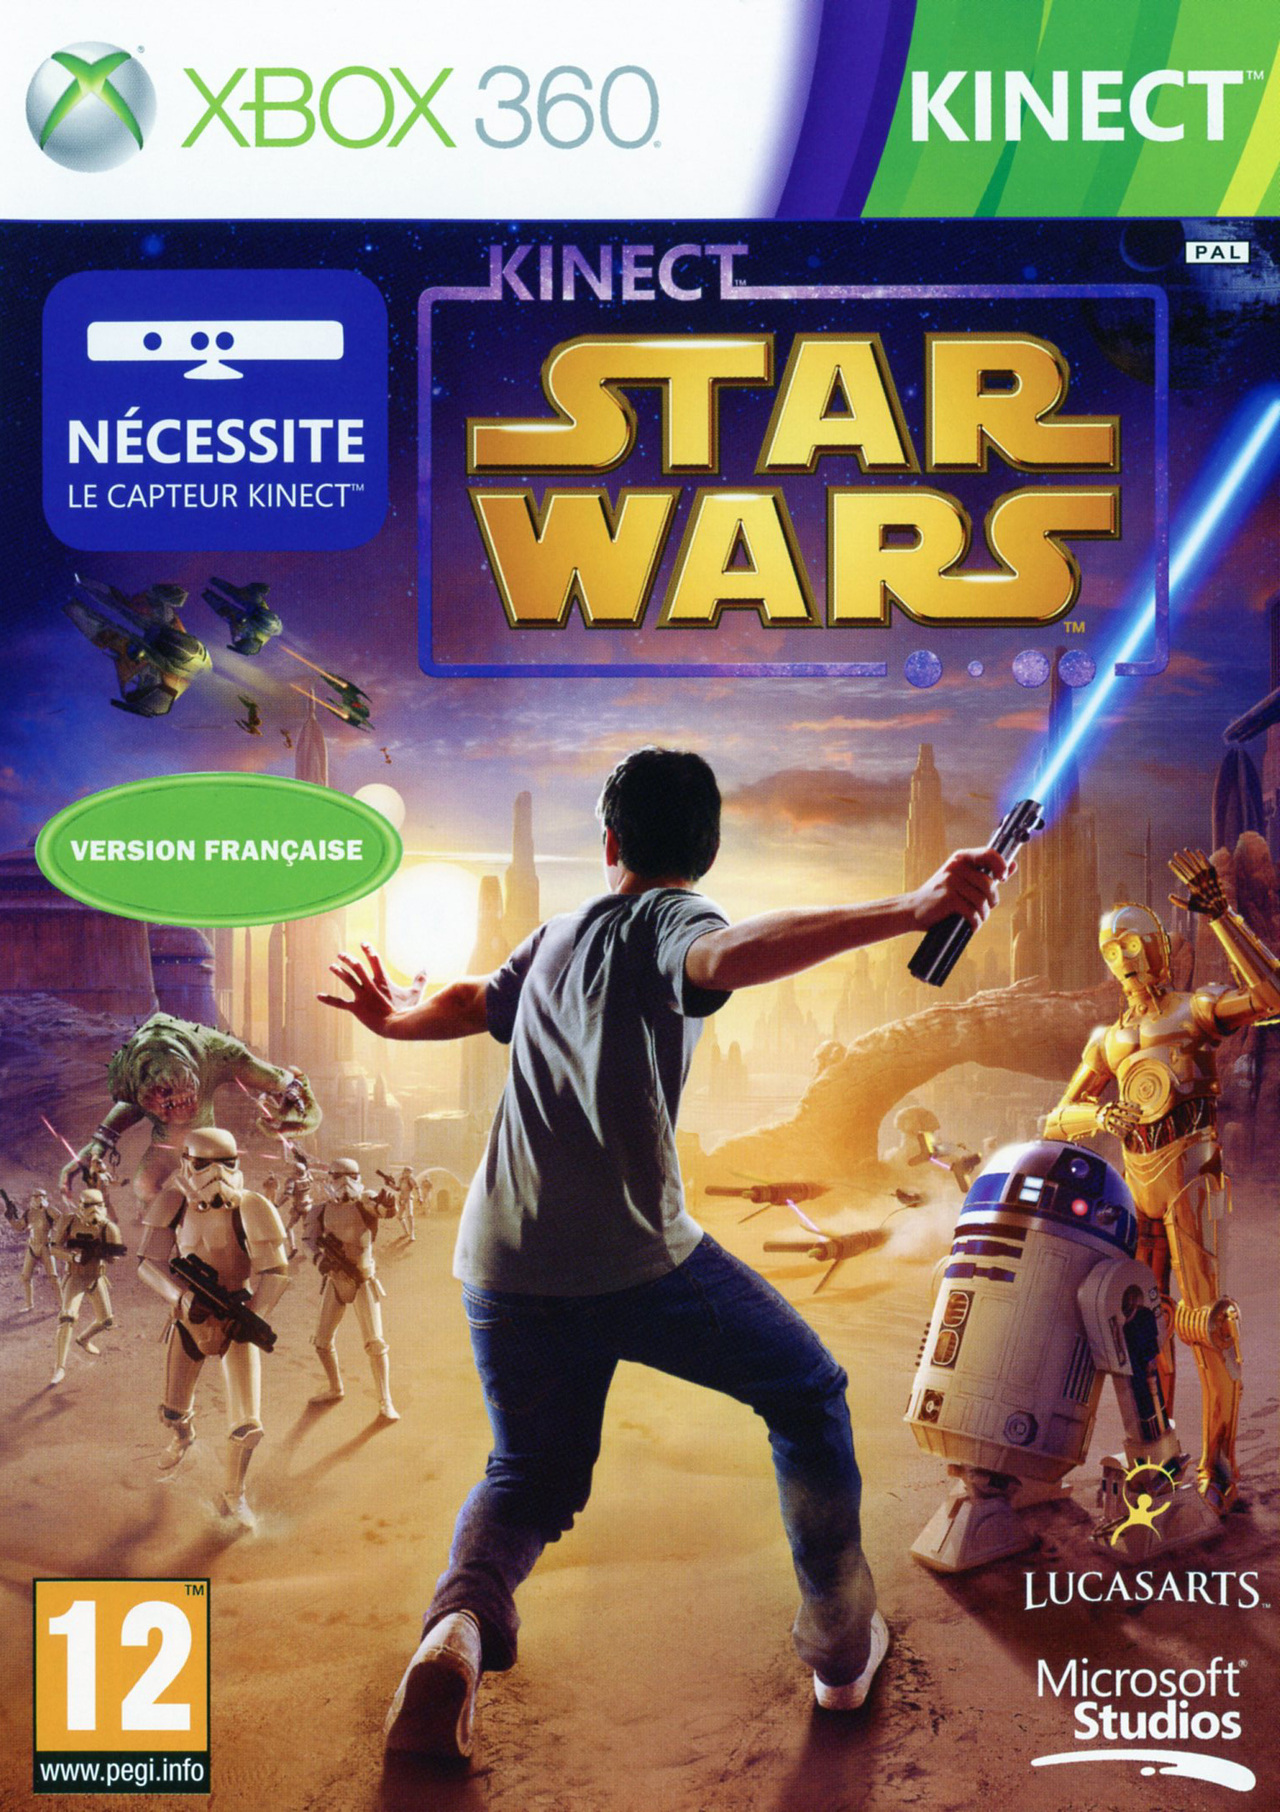 Xbox kinect star wars out today! Jedi news broadcasting star.